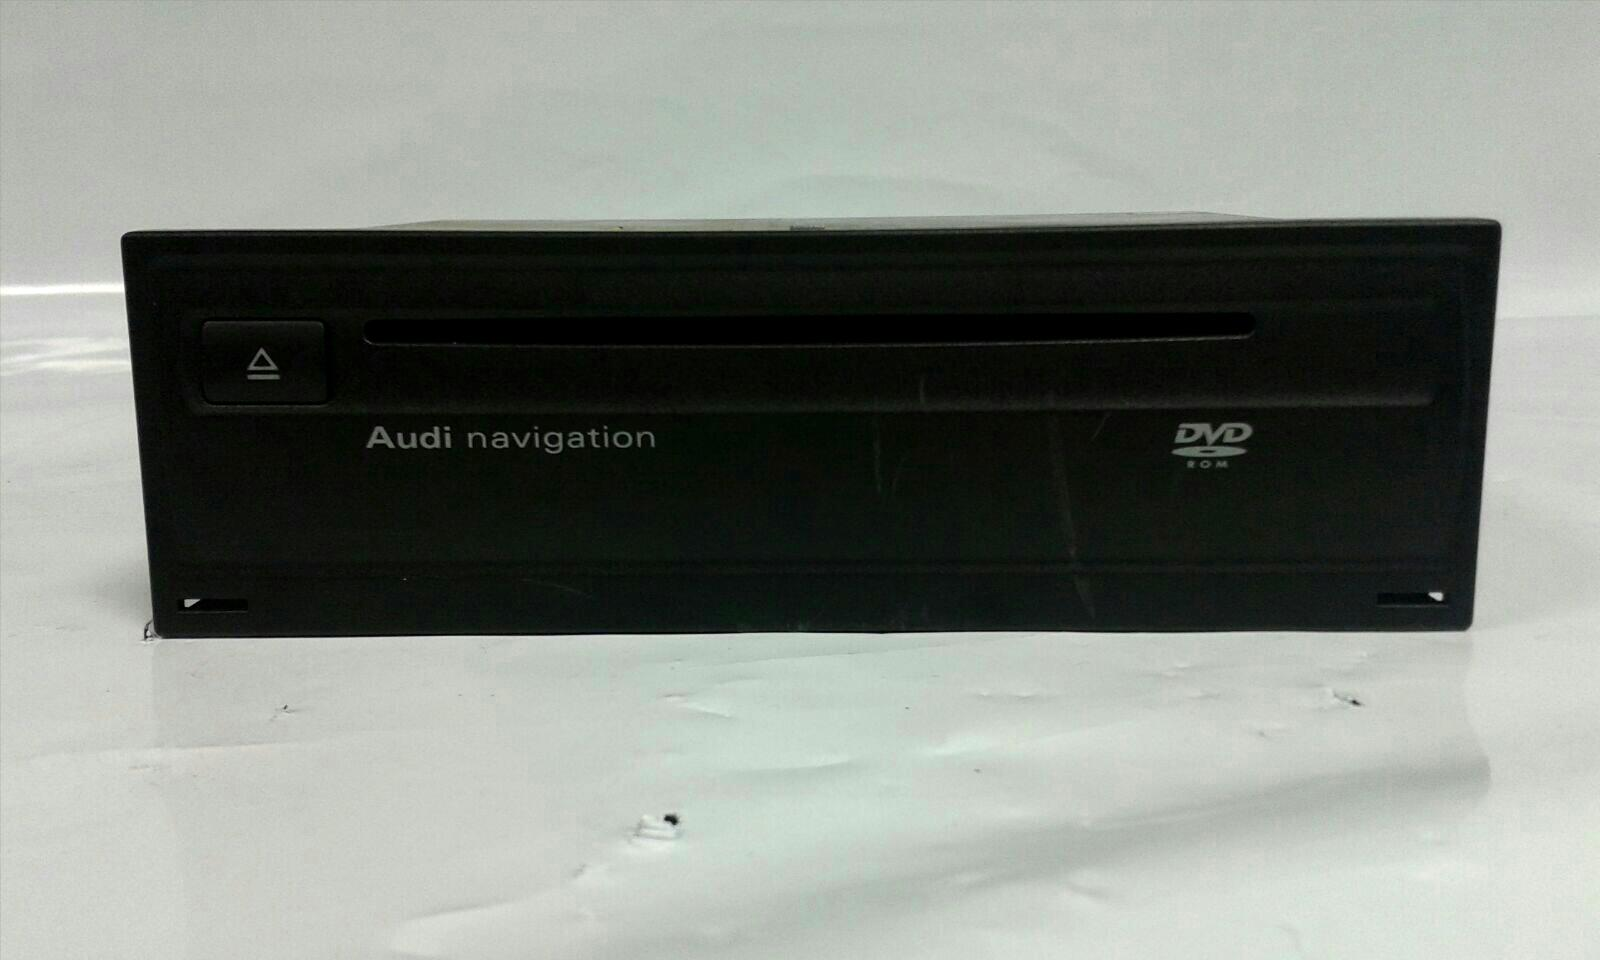 Audi mmi 2g  4e0 919 887 c  comes with map dvd  becker be6353 component protection  will need removing  tested ok